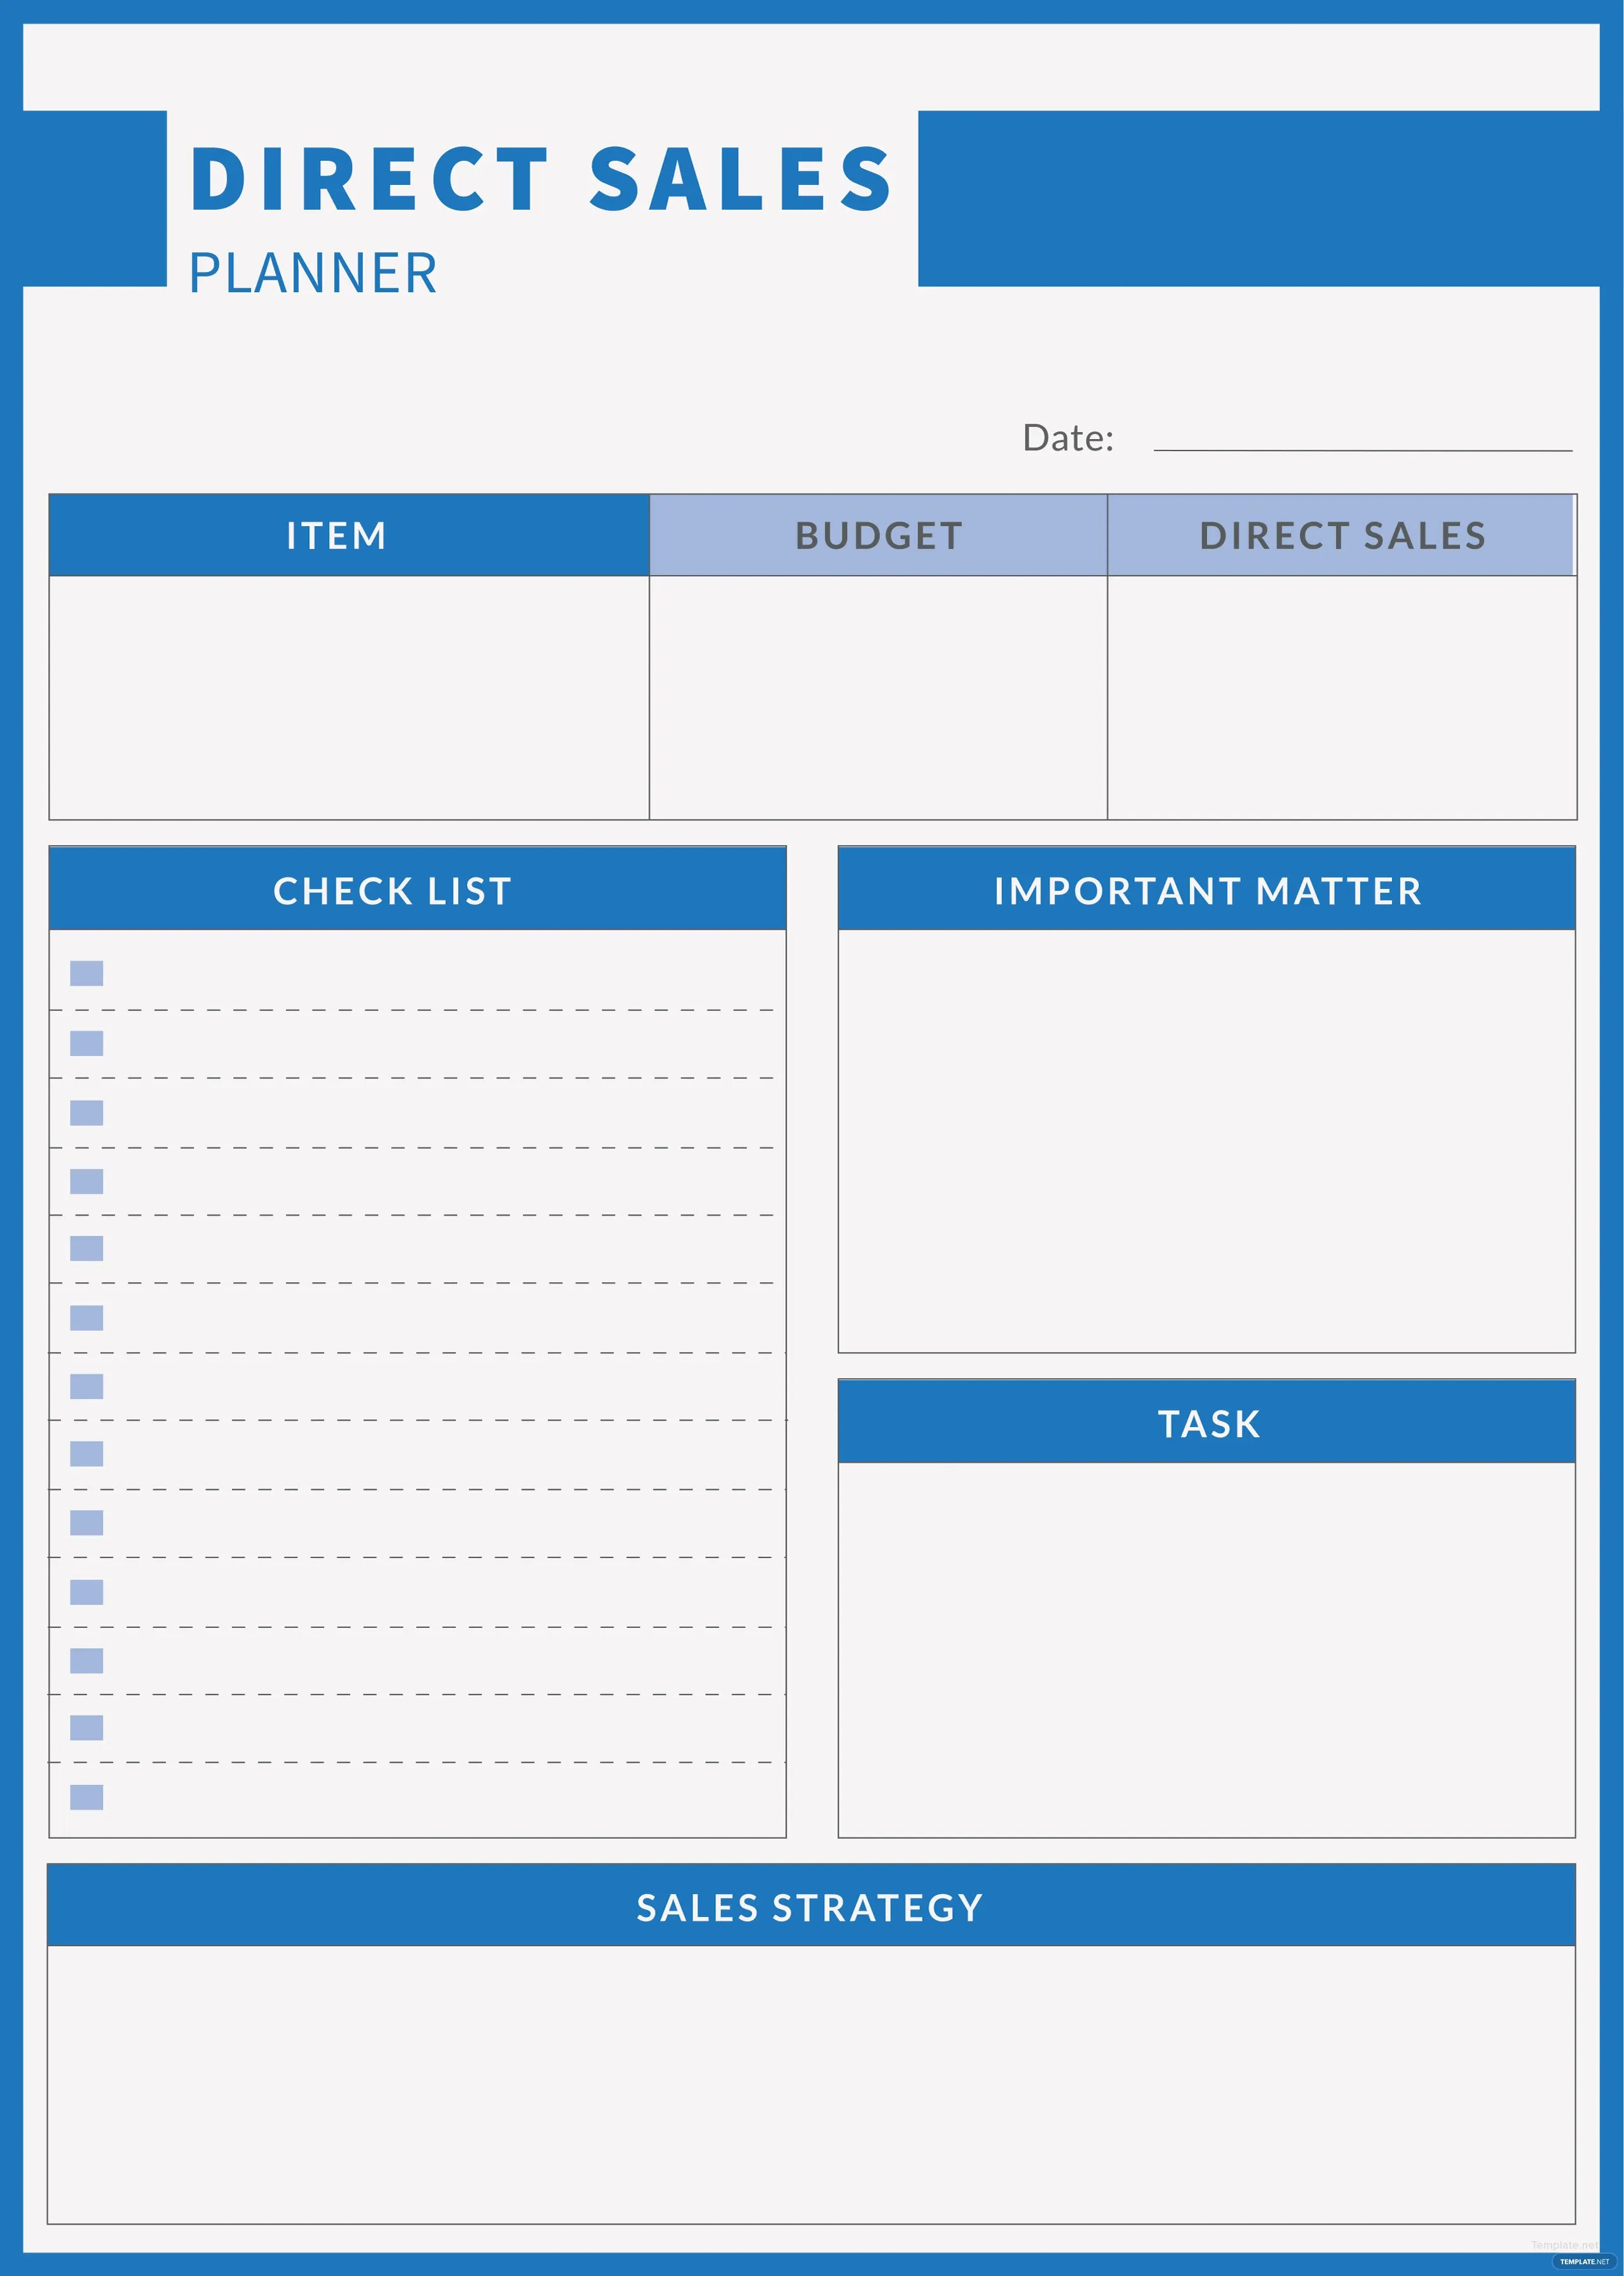 Free Direct Sales Planner Template In Adobe Photoshop Adobe Illustrator